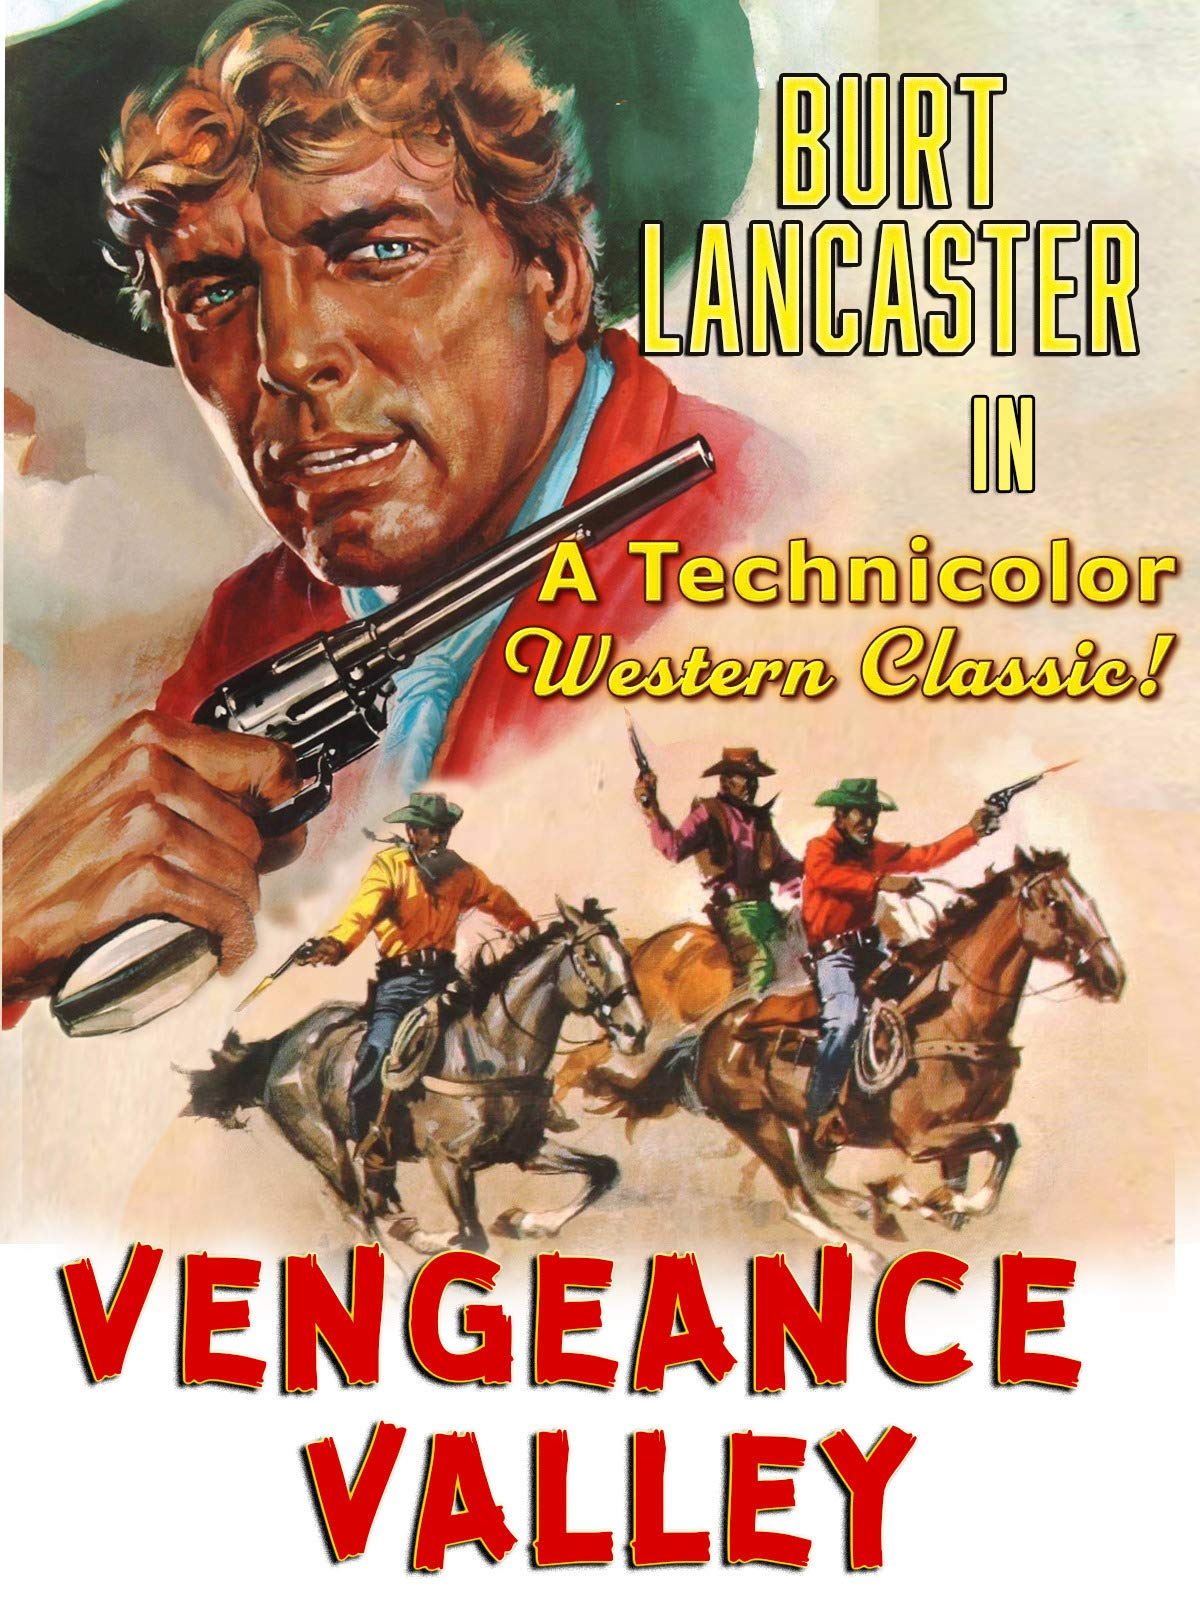 Burt Lancaster In Vengeance Valley - A Technicolor Western Classic!